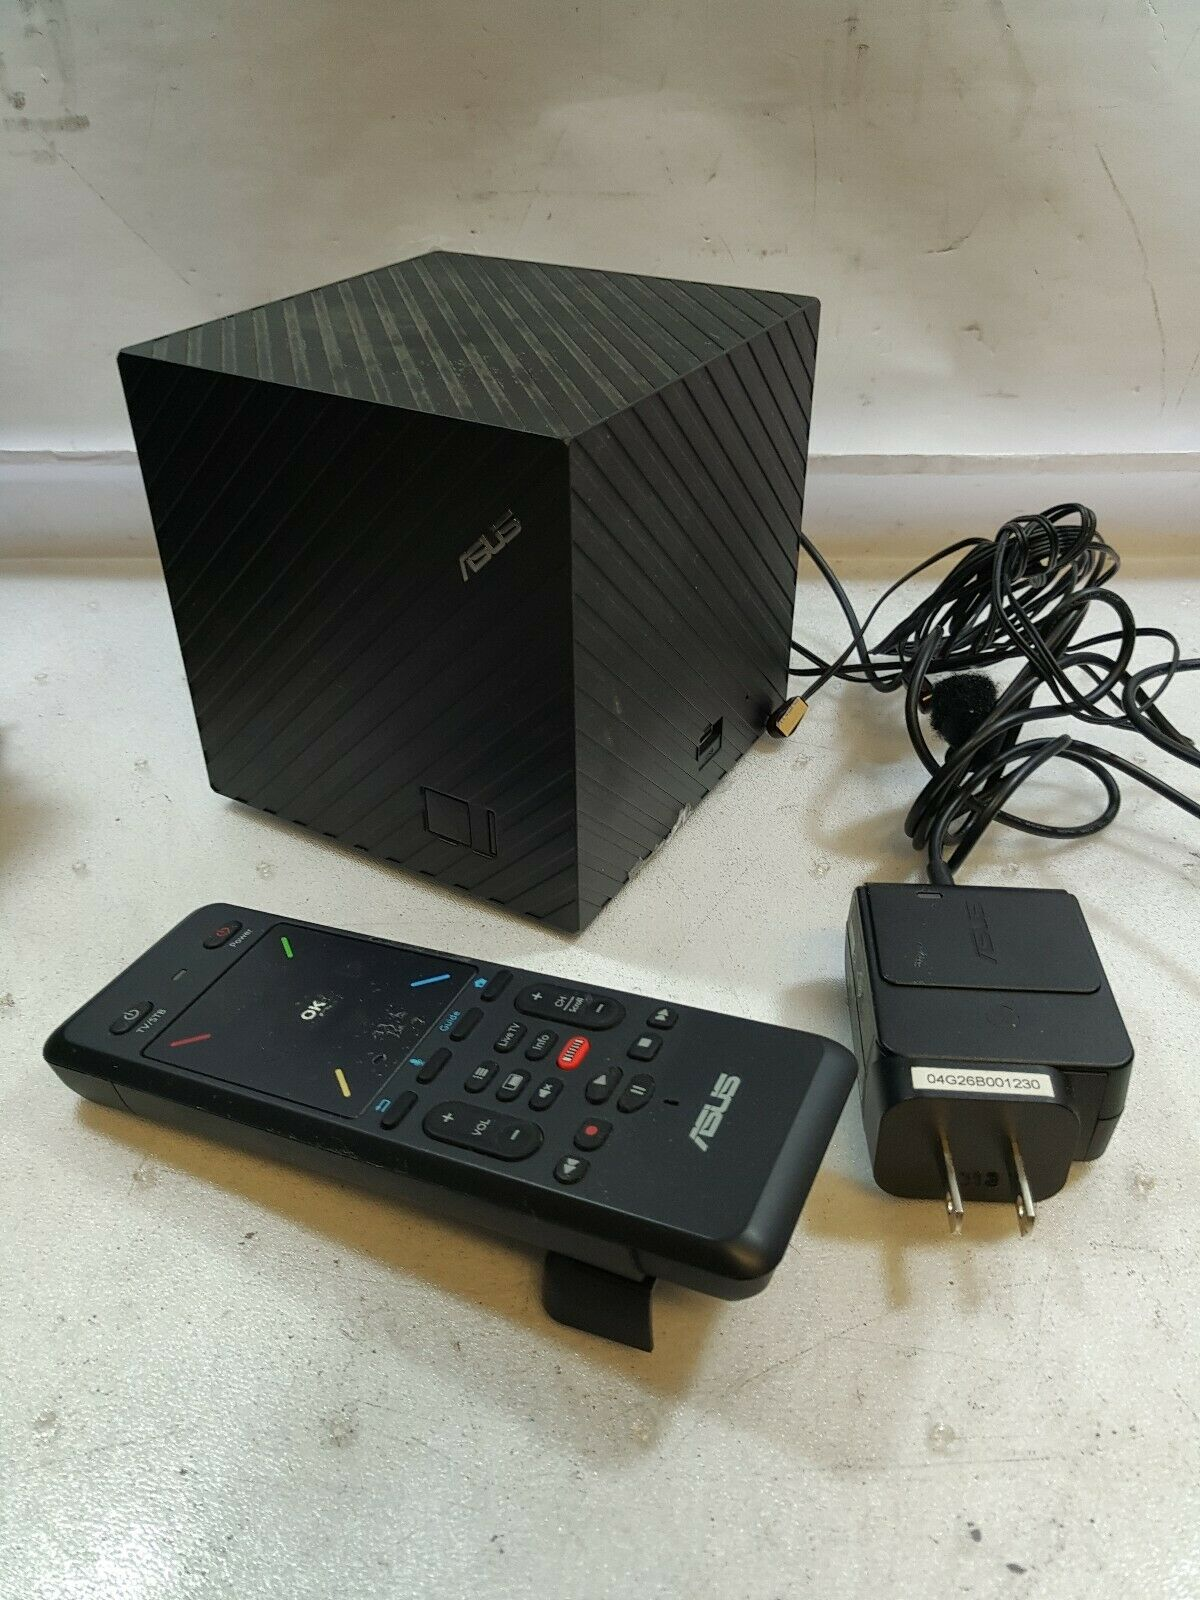 – ASUS CUBE Google TV Box  Wireless Media Streamer AW-NM388(CAN NOT RUN YOUTUBE)